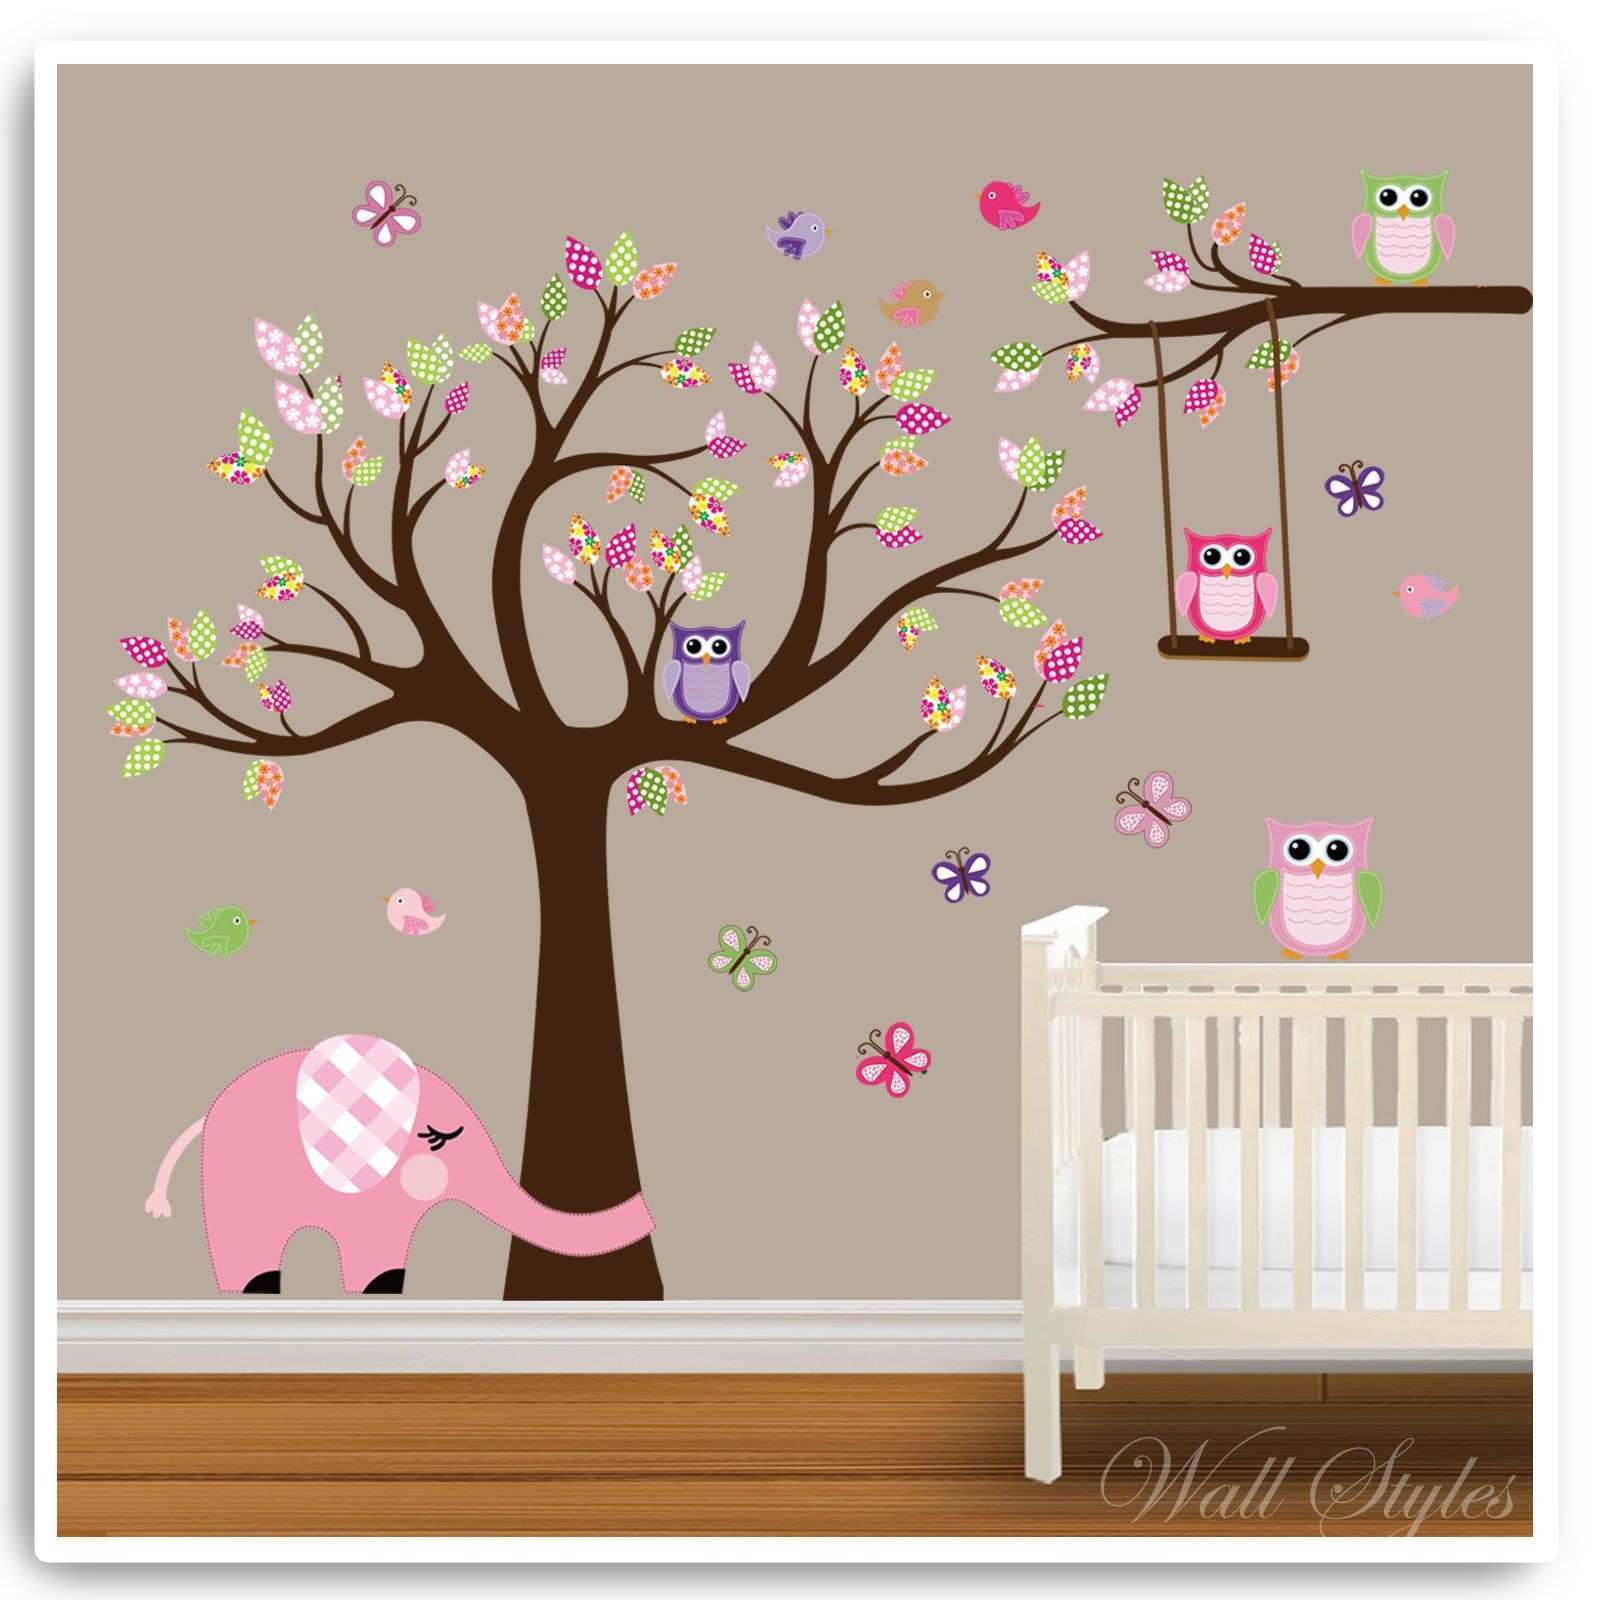 Animal Wall Stickers Owl Jungle Zoo Tree Baby Nursery Bedroom Decals